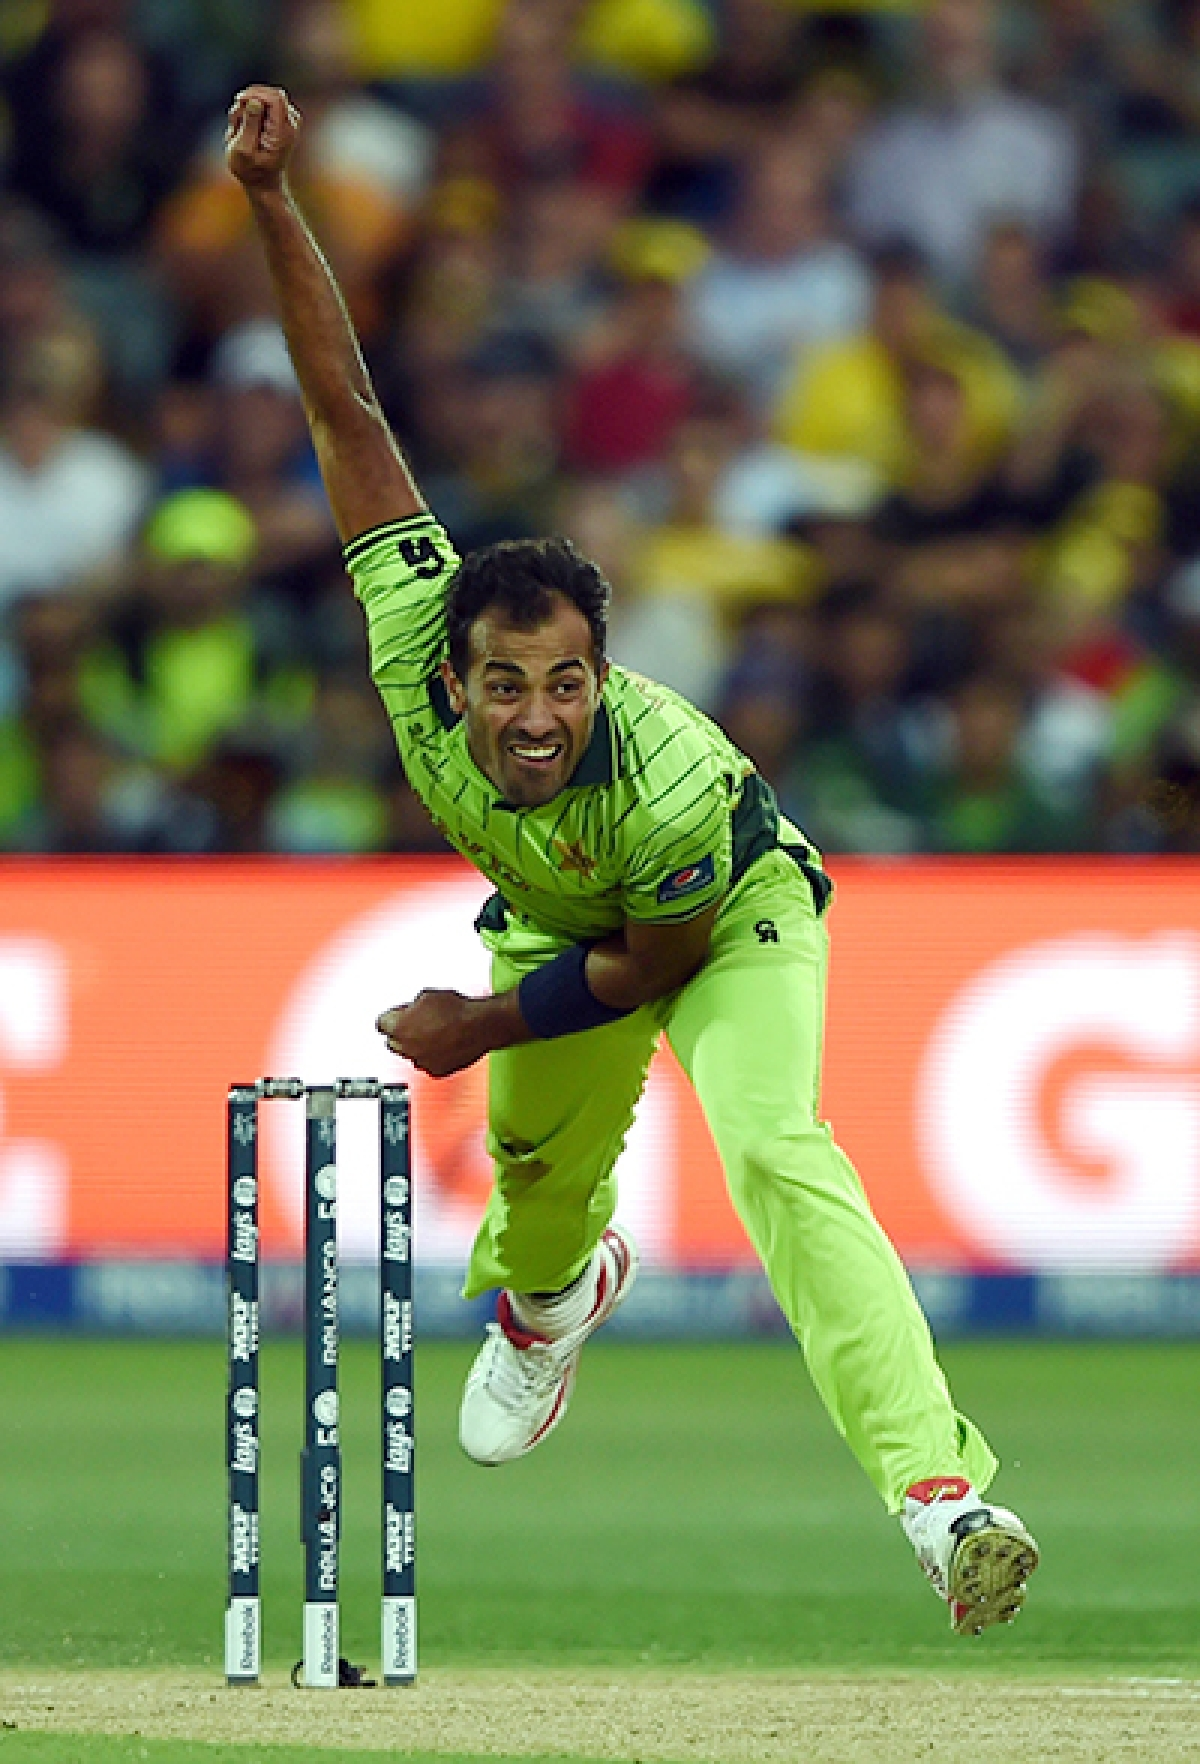 Indians should take cue from Wahab: Rameez